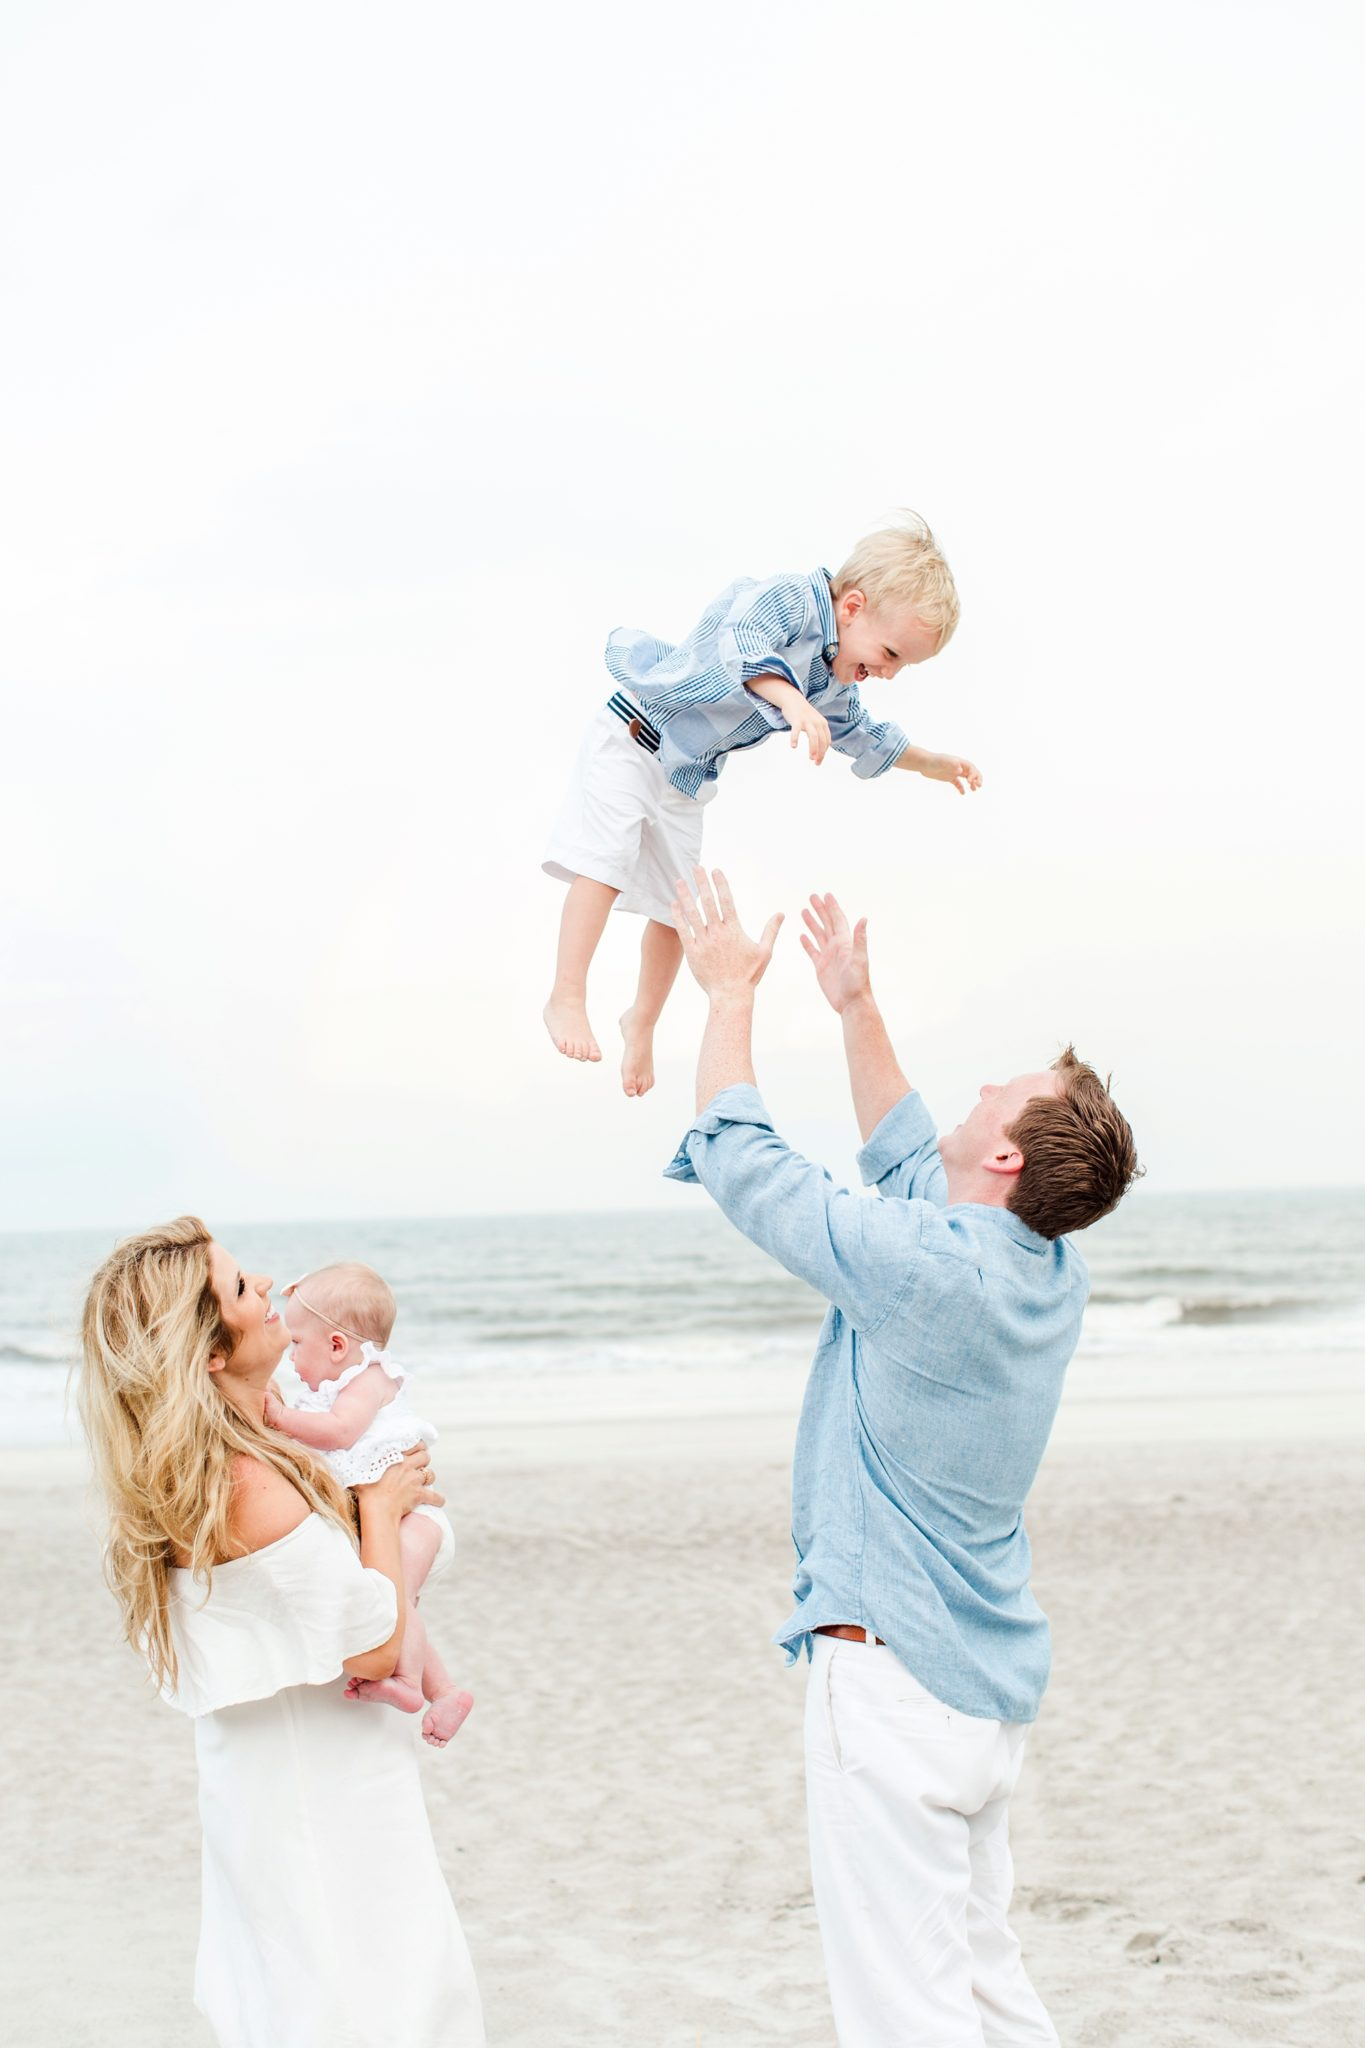 Natalie Broach Photography, Lindsey Regan Thorne, Family Session, Amelia Island Beach Plantation.